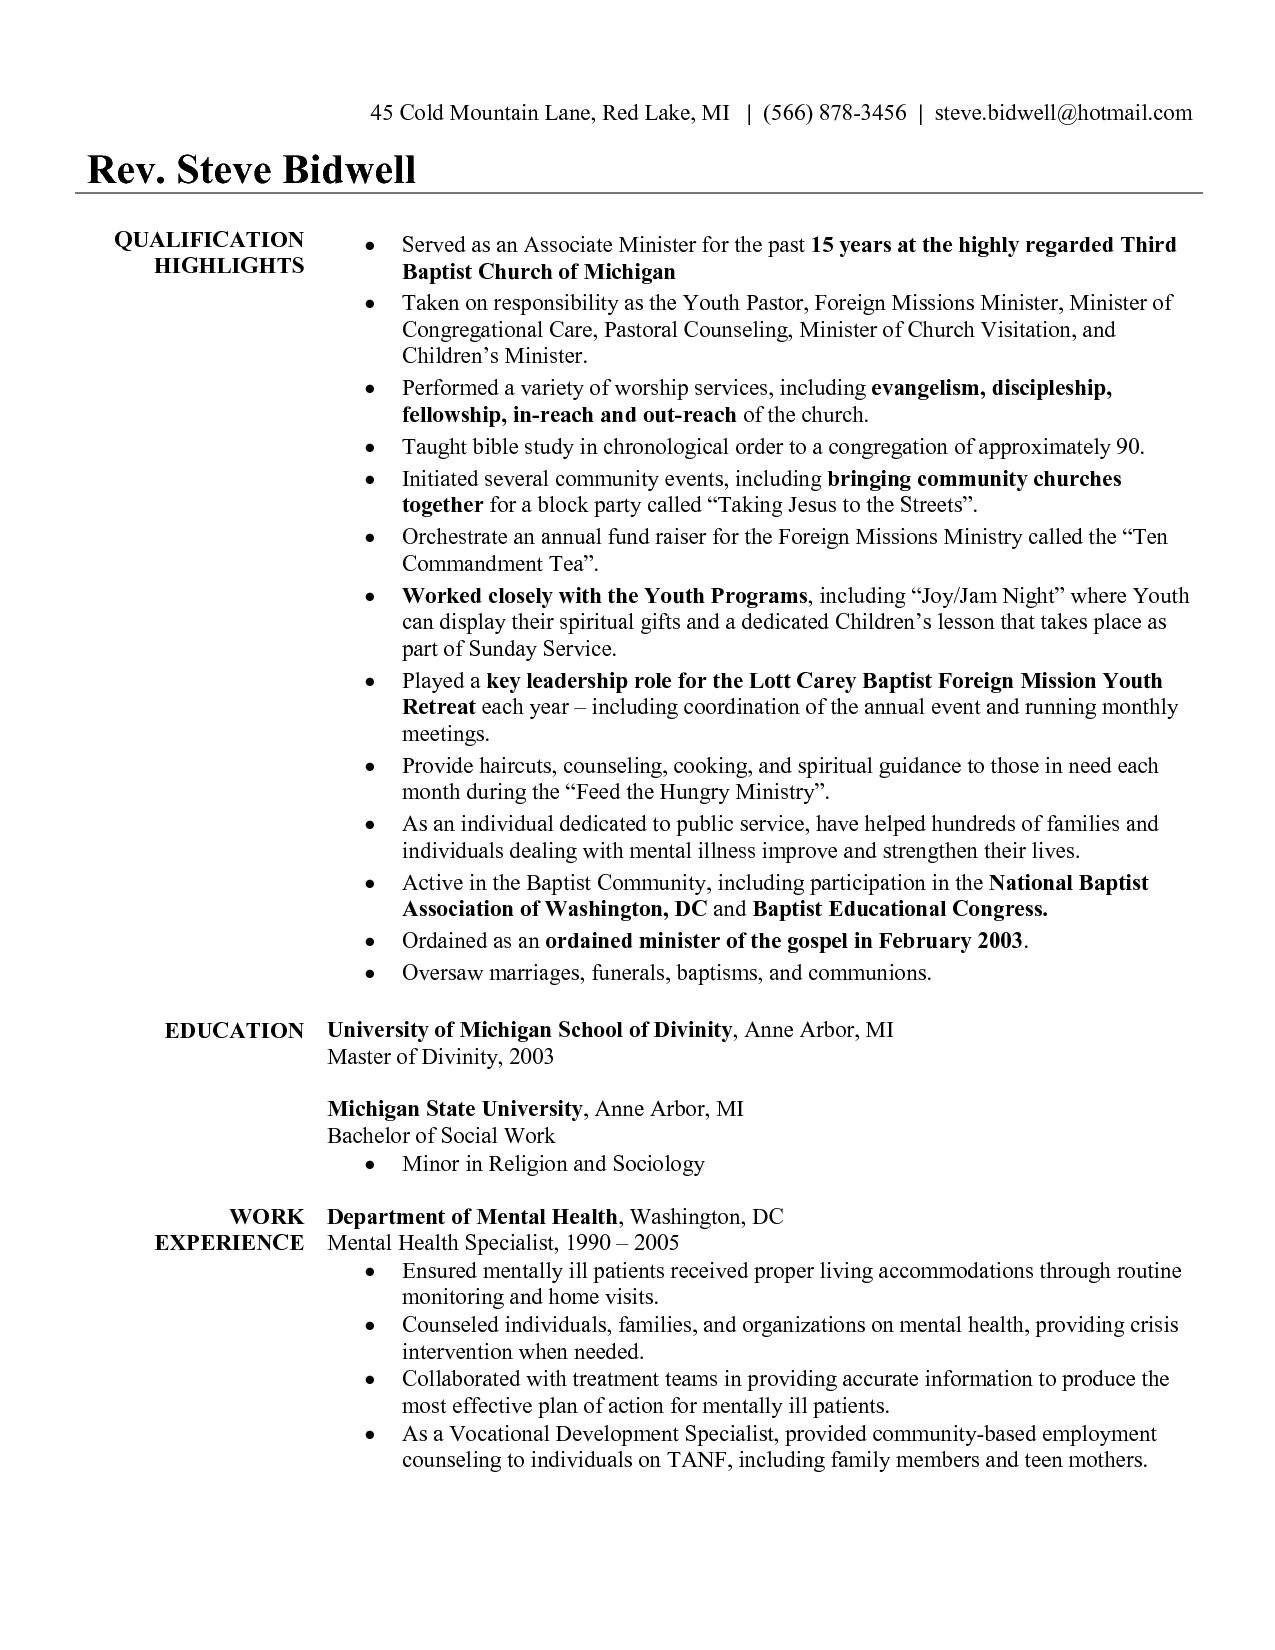 Youth Minister Resume Template - Youth Pastor Resume Awesome Pastor Resume Template Free Unique